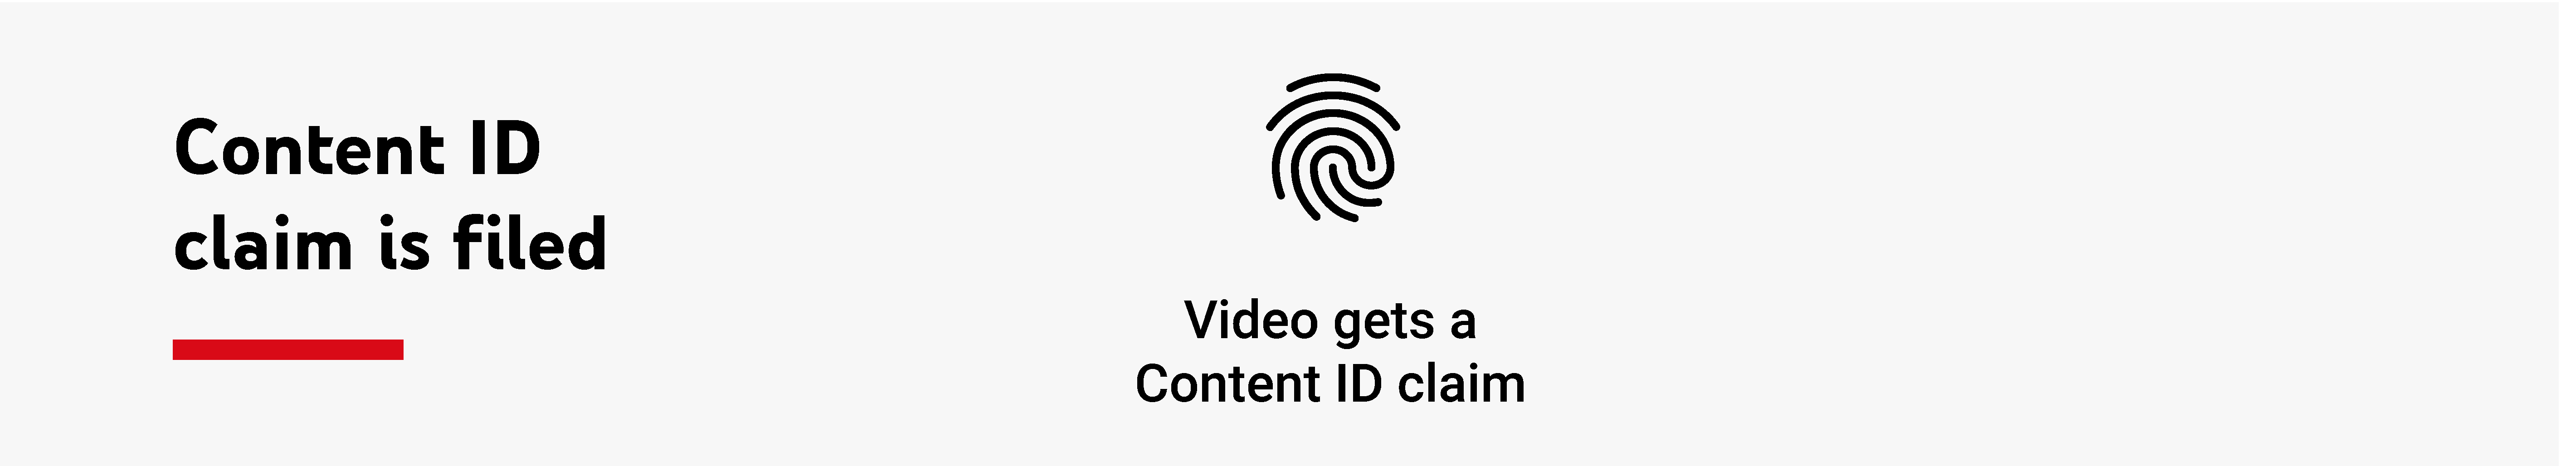 The first step of the Youtube Content ID chart: It says: Content ID claim is filed. Under this step, it says: Video gets a content ID claim.